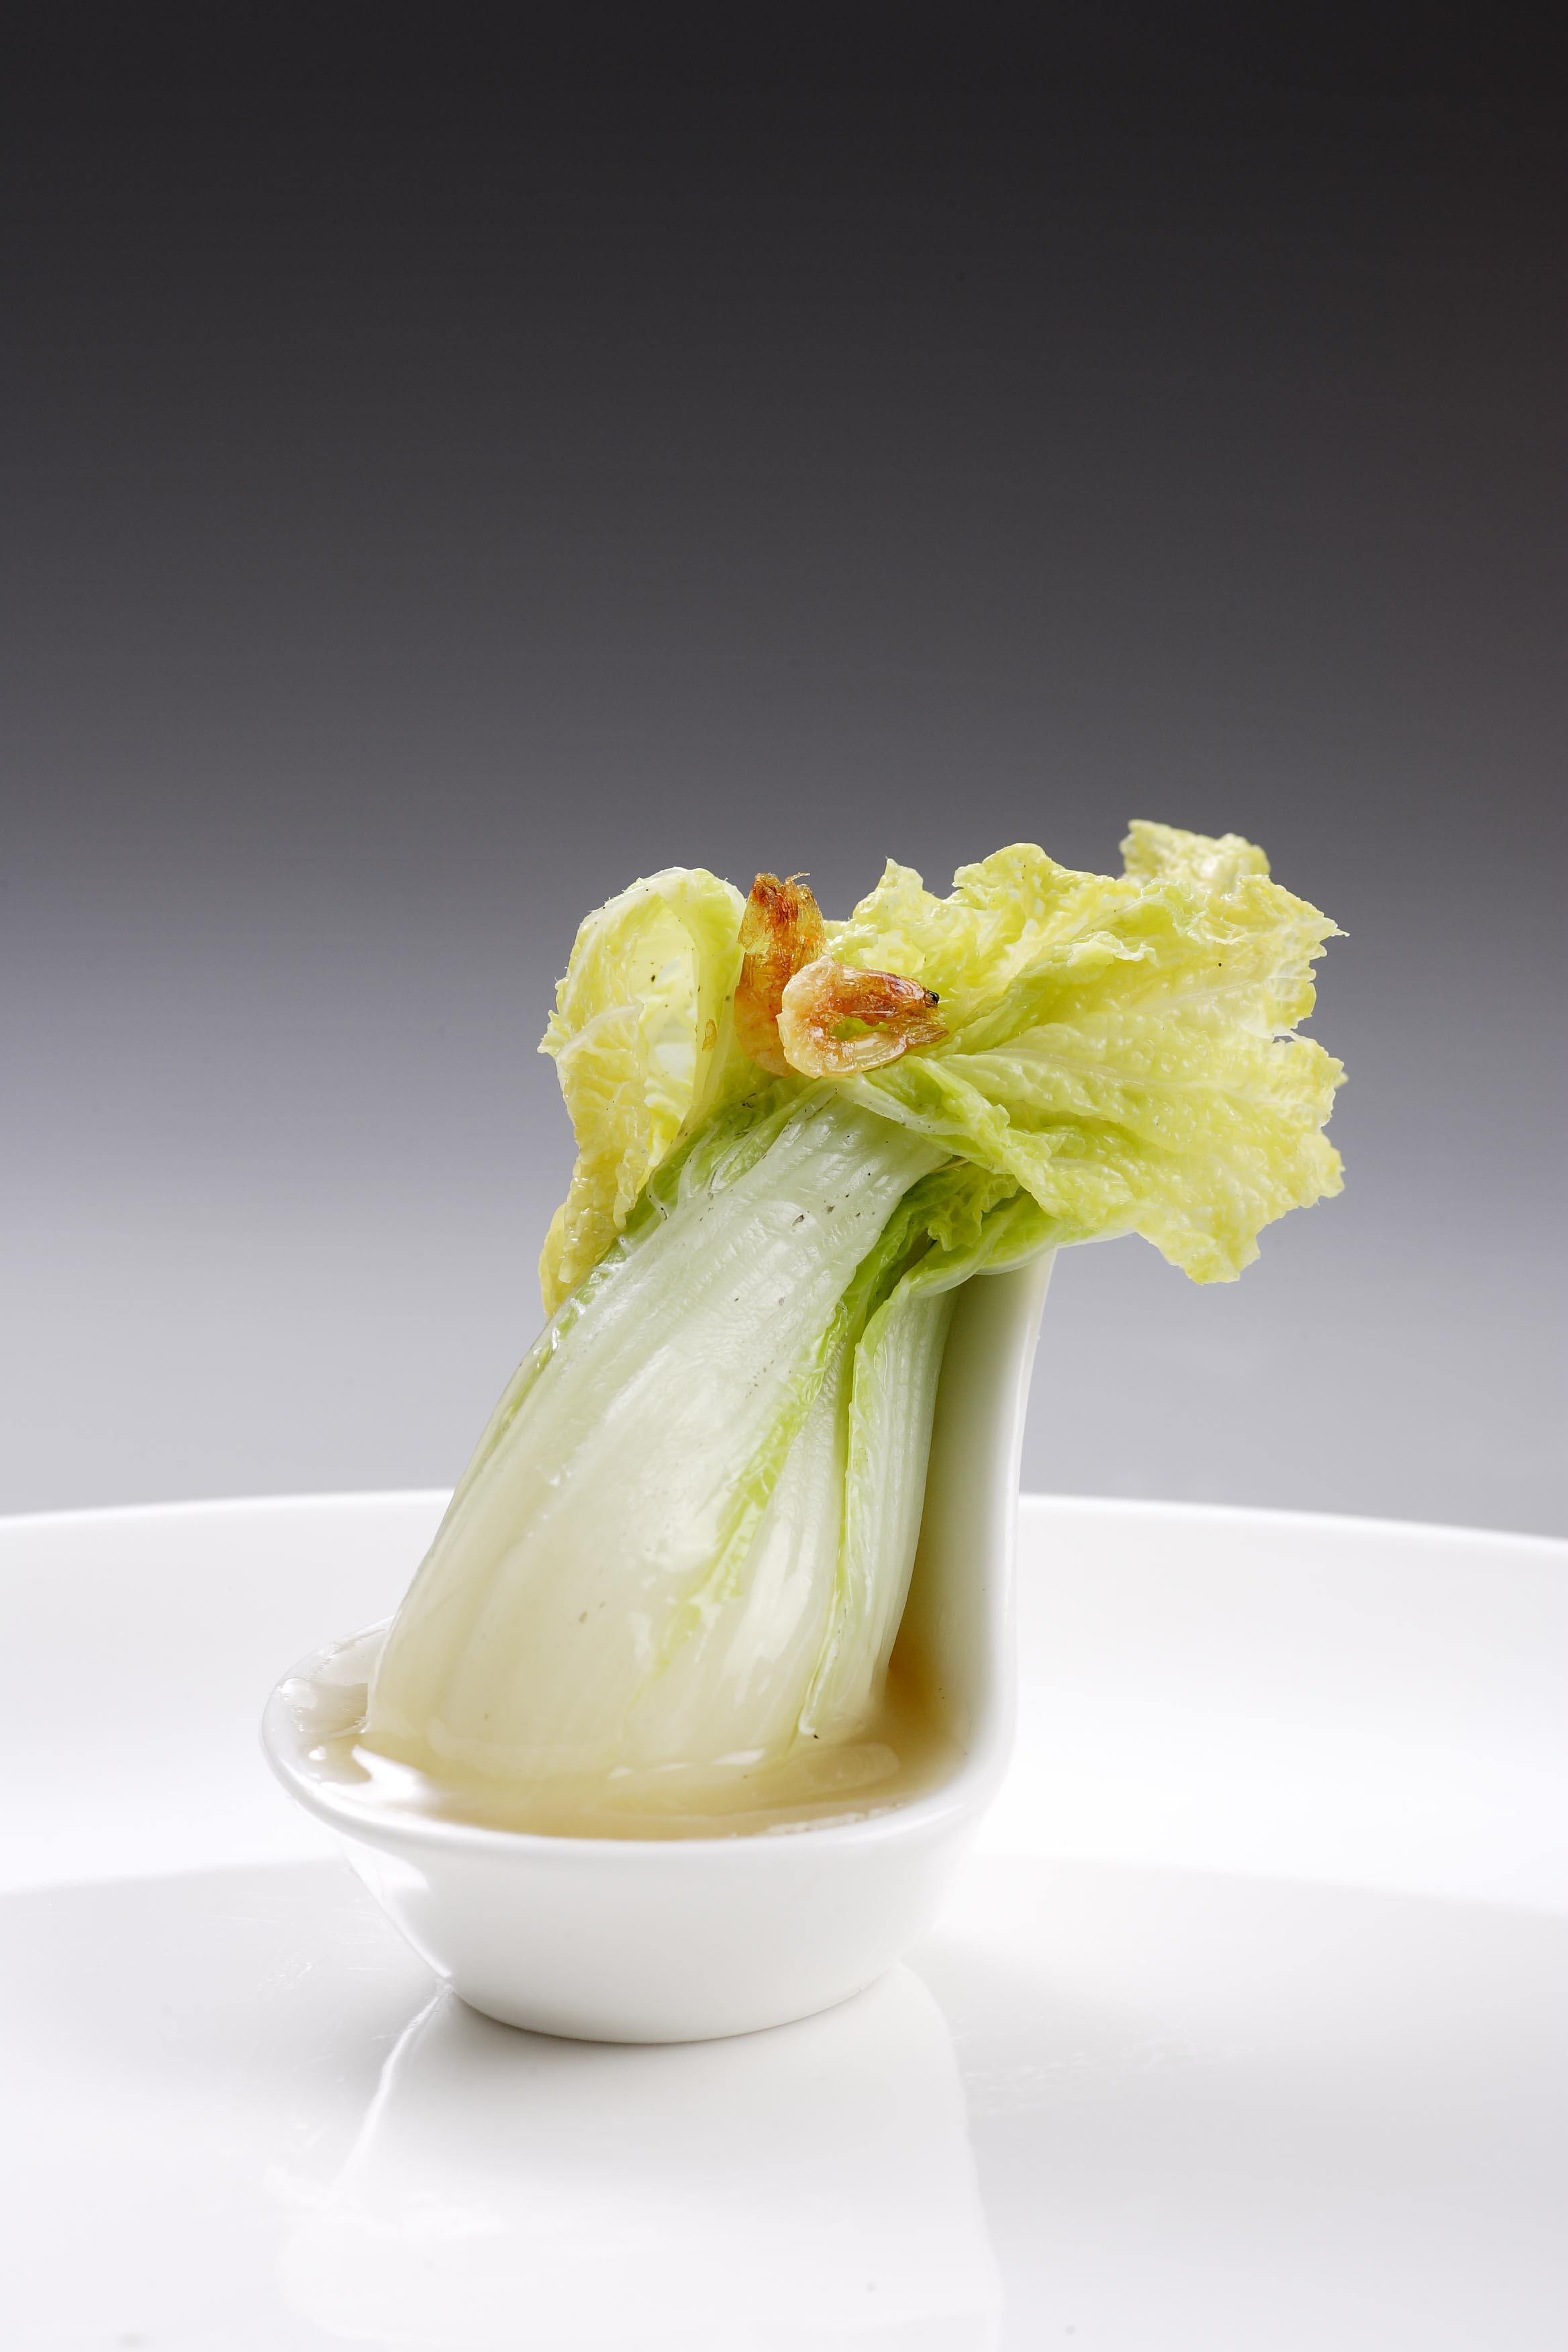 Jadeite Cabbage with Insects